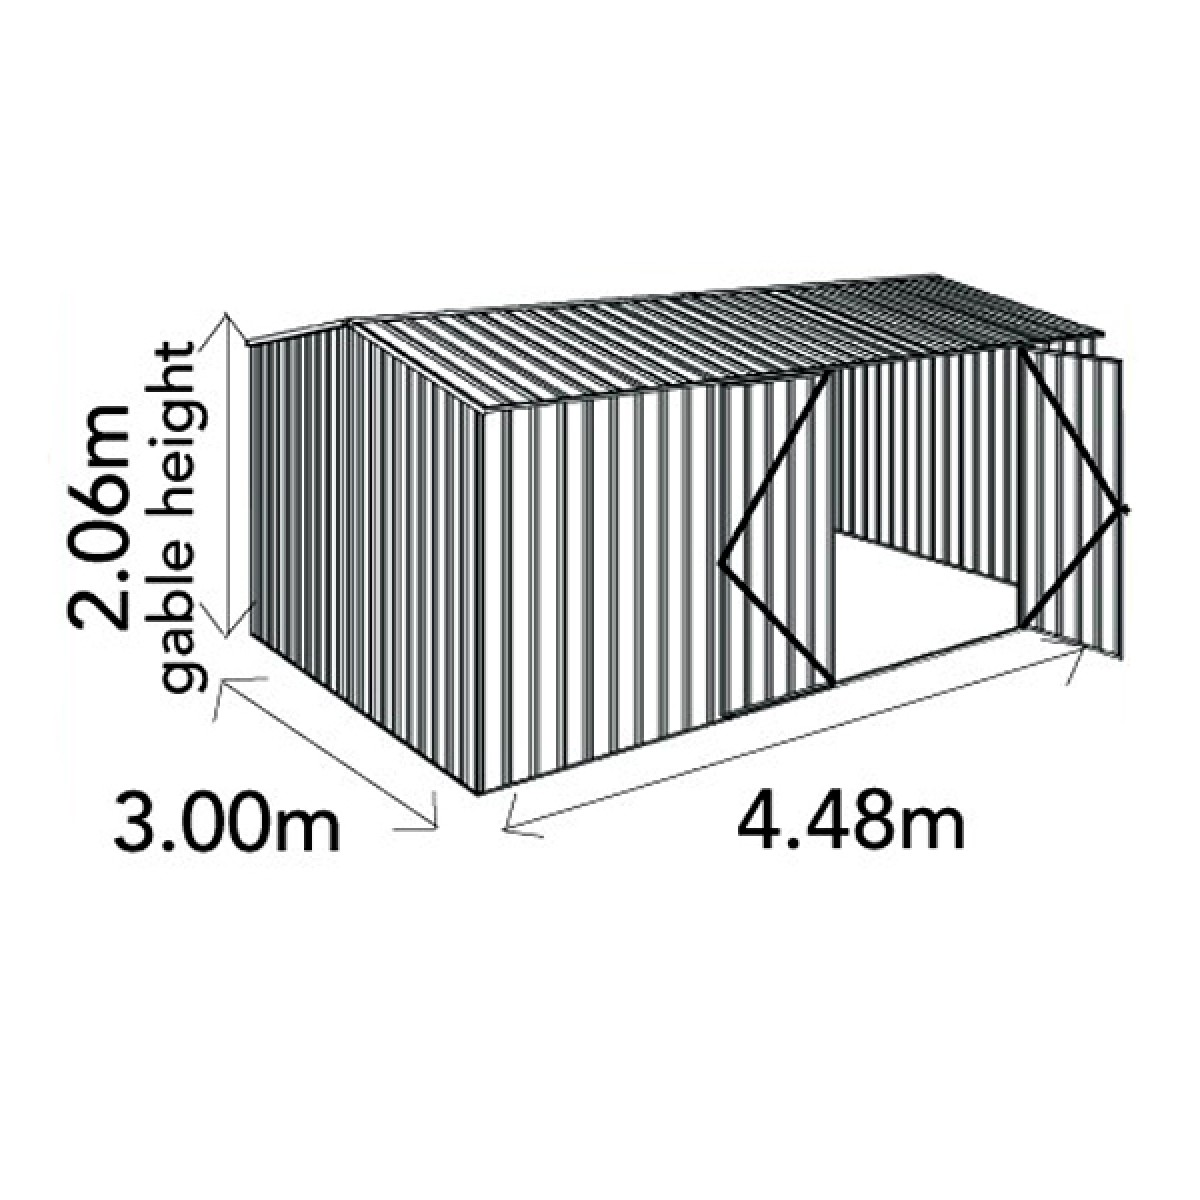 Absco Workshop Garden Shed 4 48mw X 3md X 2 06mh